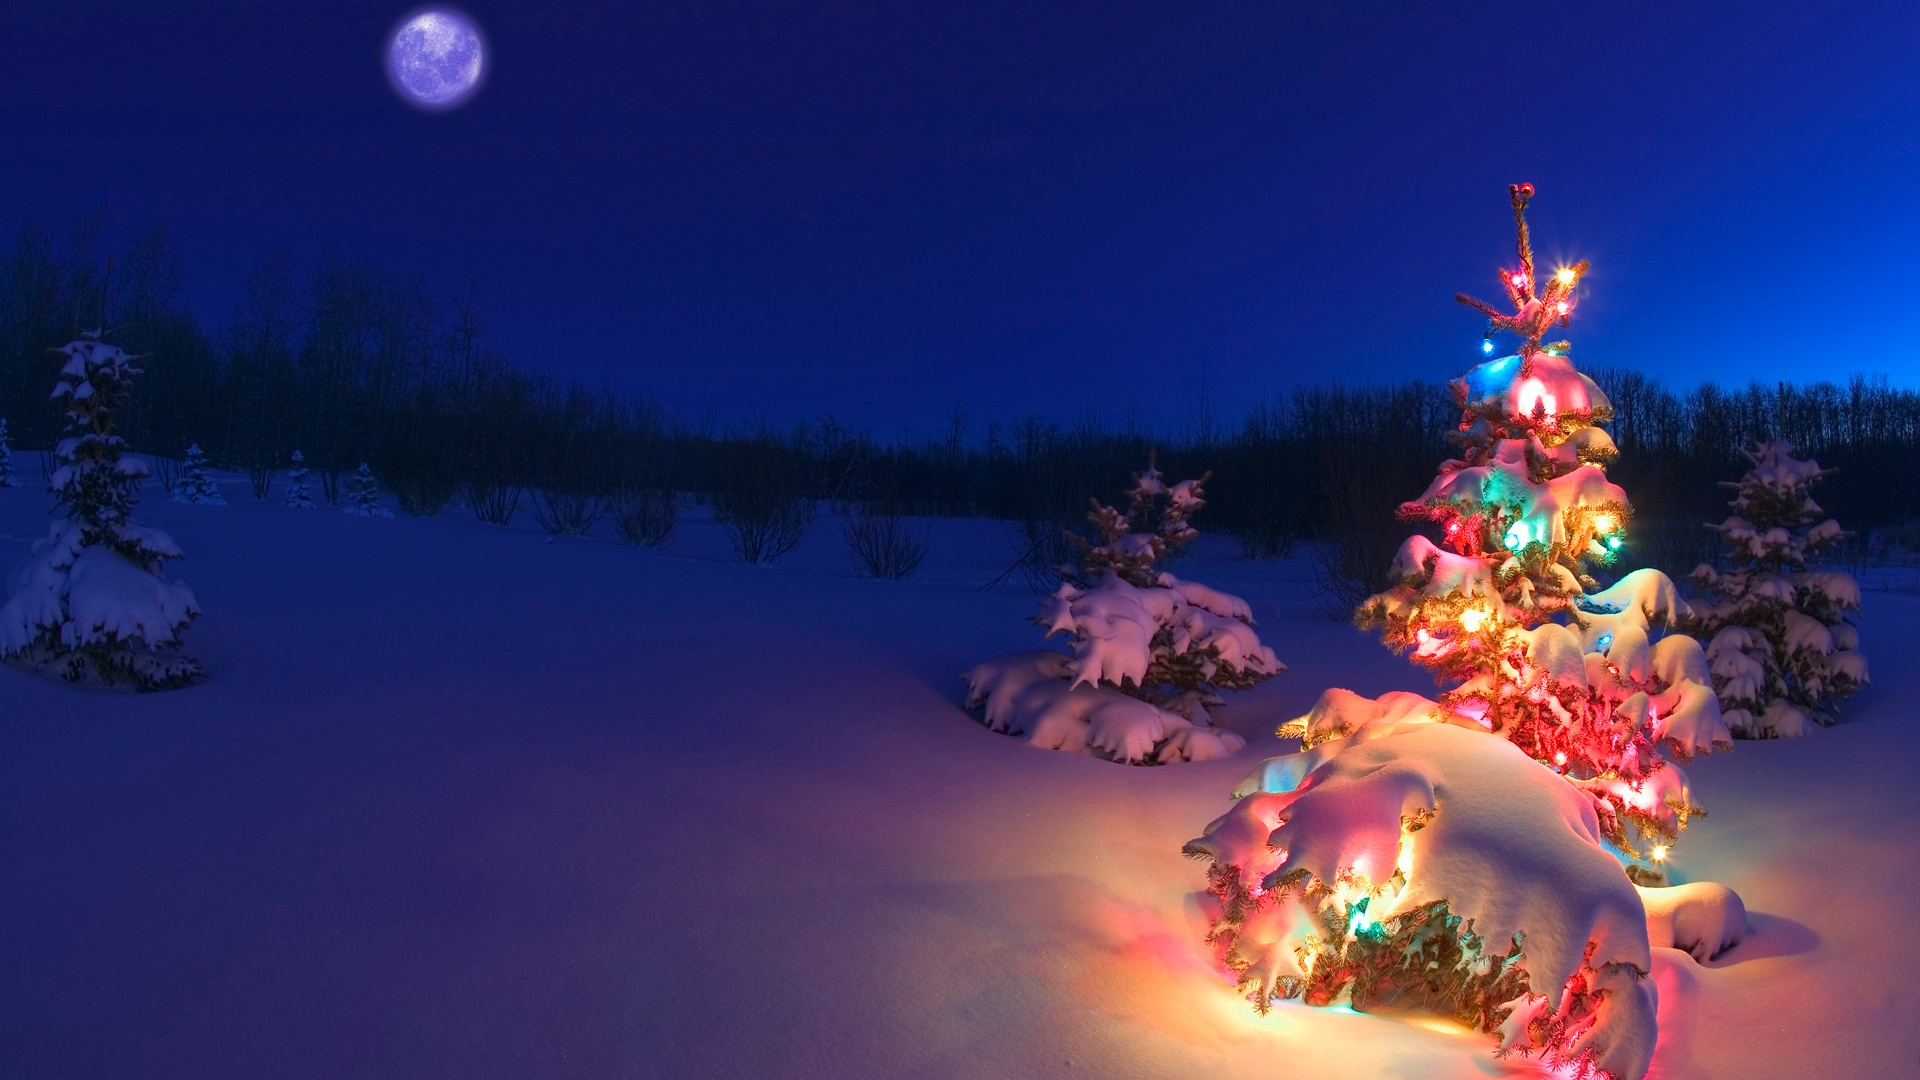 Wallpaper Christmas HD Free Download